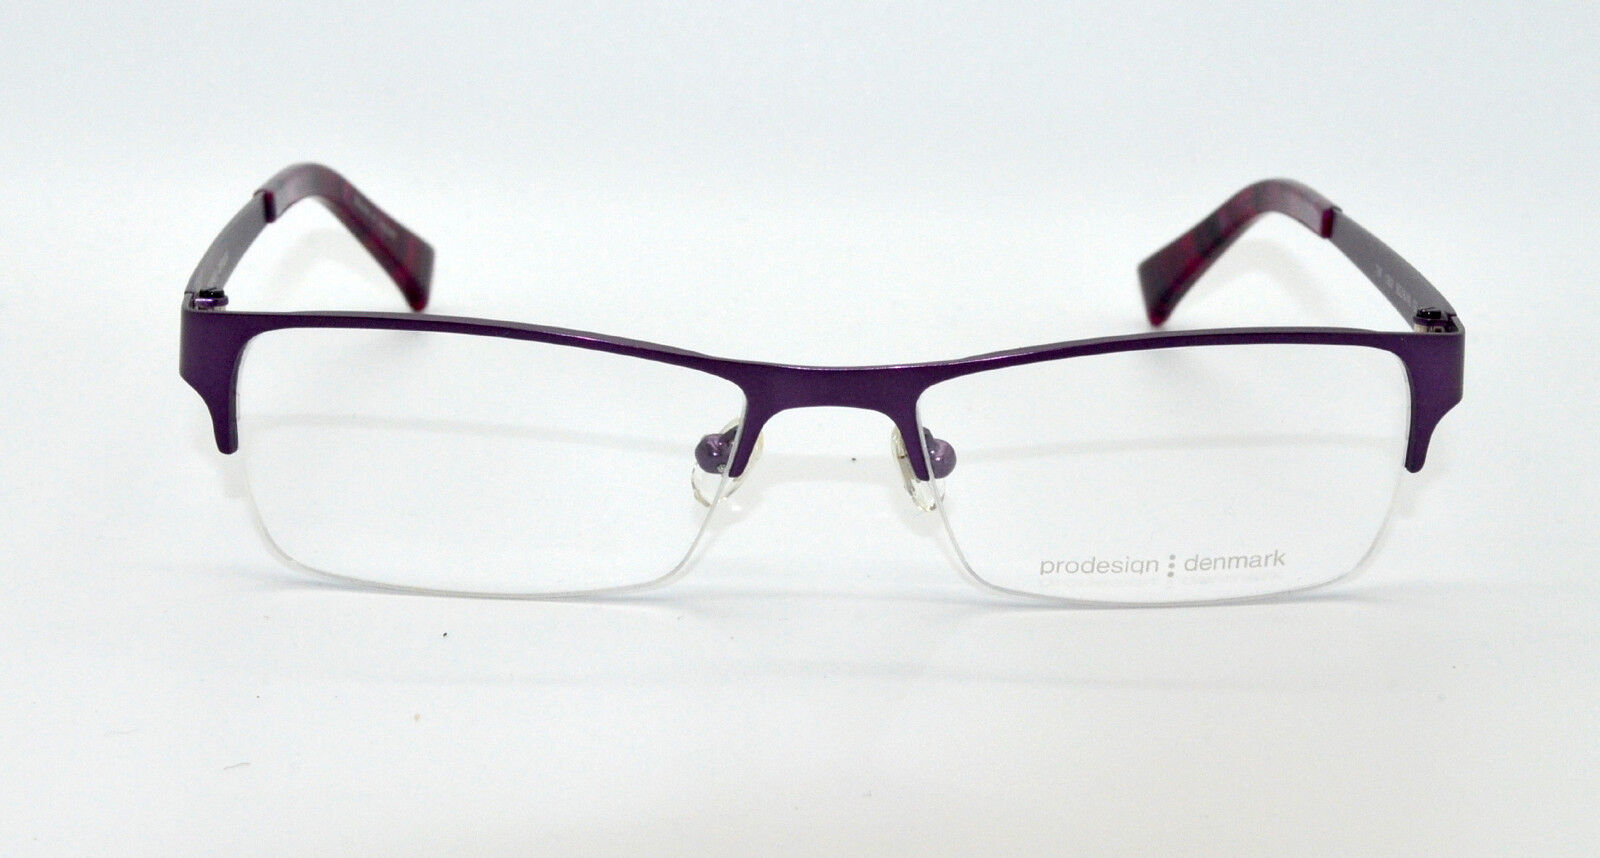 086376deb6b 100 Authentic PRODESIGN Denmark 1247 C.3531 Purple Eyeglasses Frames ...